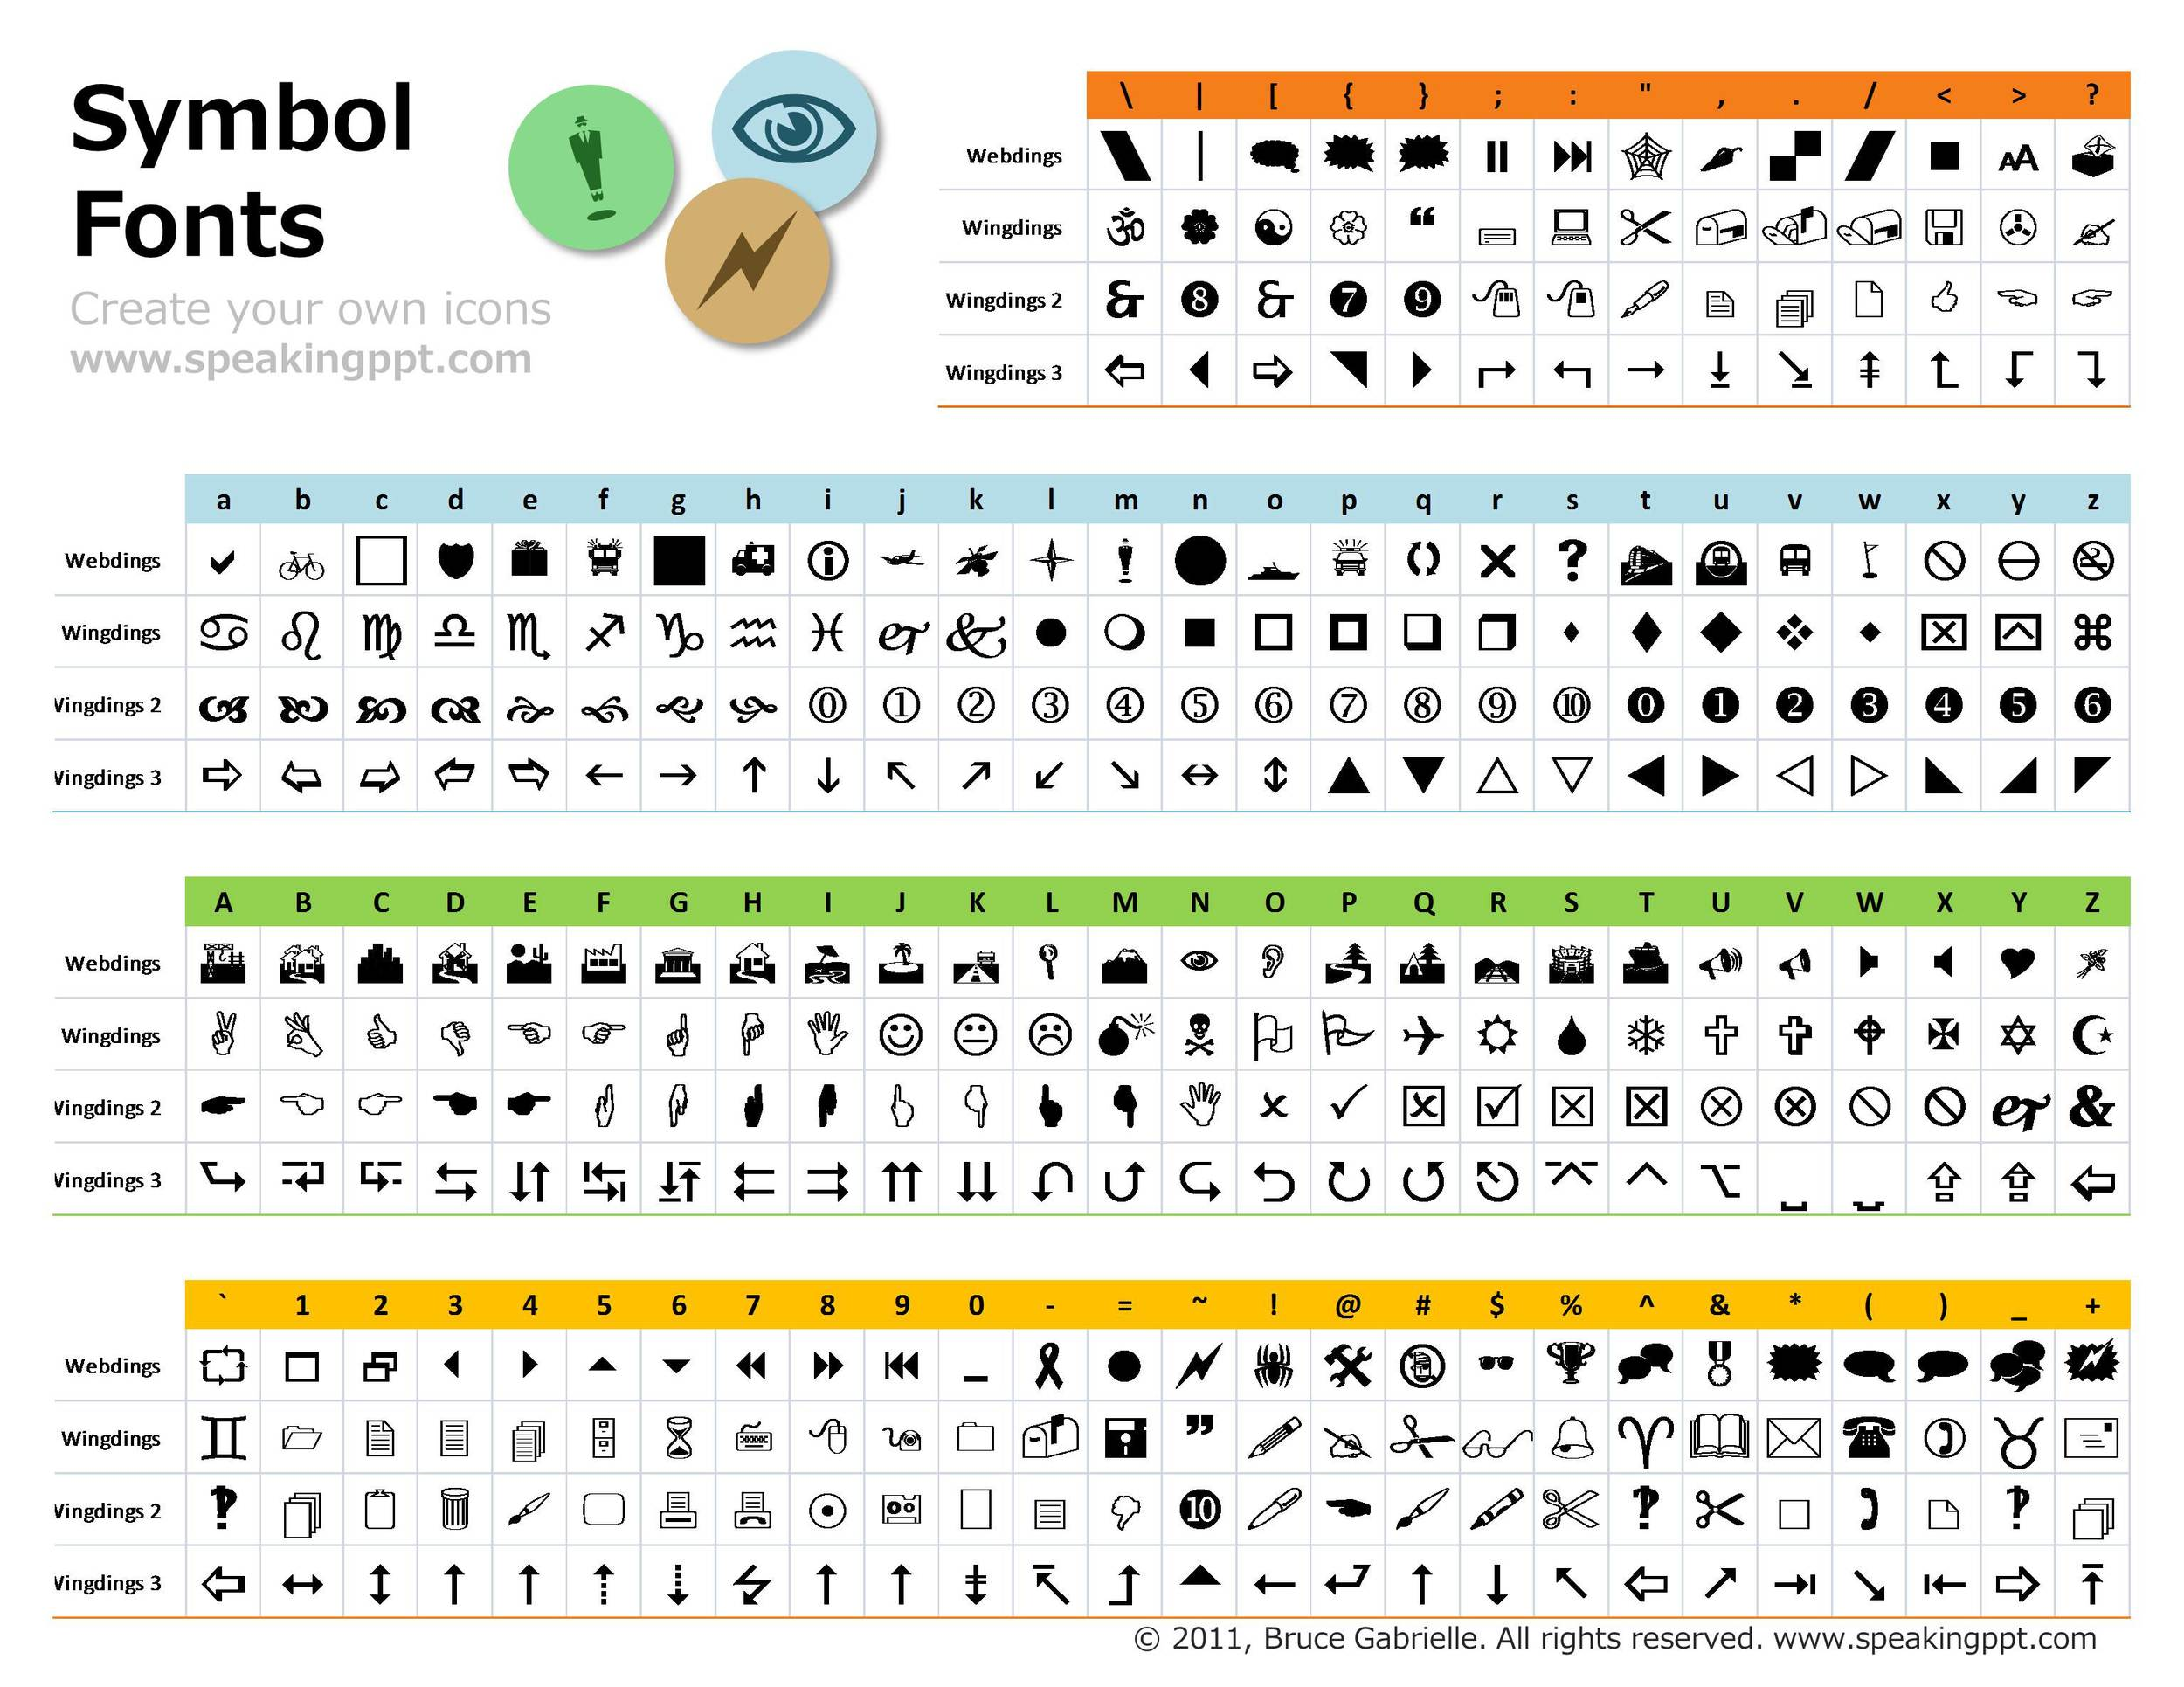 SpeakingPP_Wingdings_Webdings_Chart.jpg